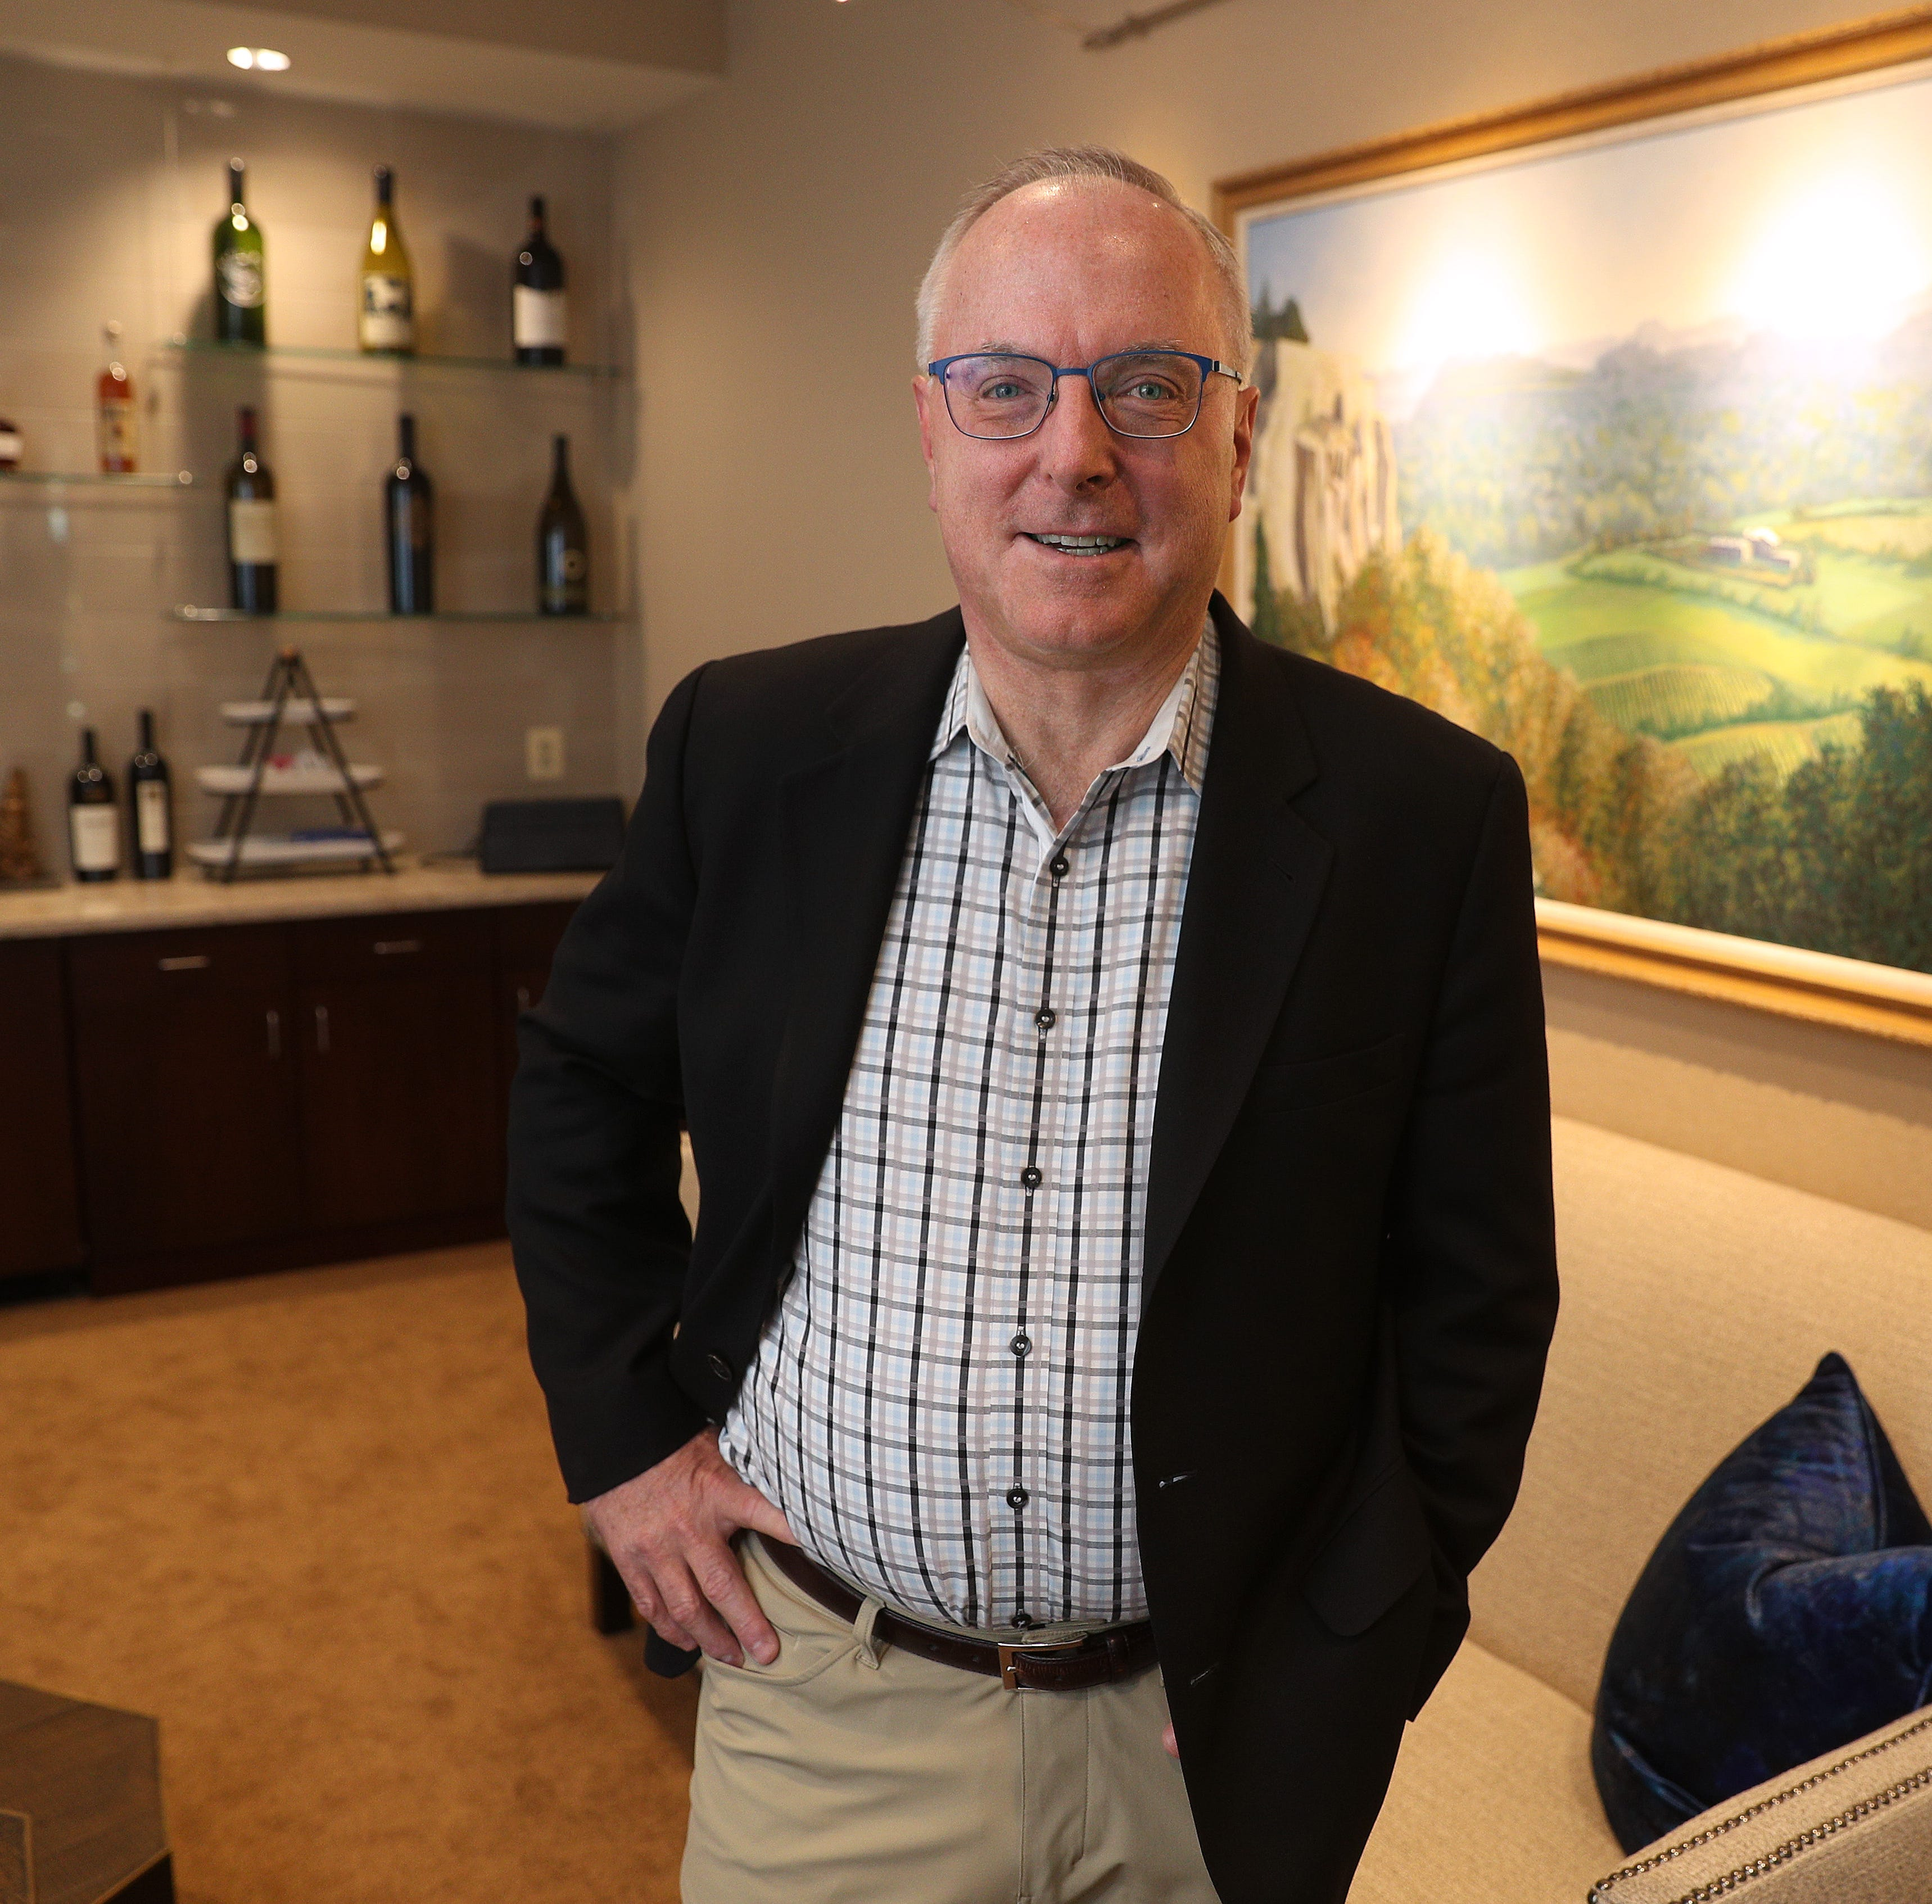 Q&A: Constellation Brands CEO Bill Newlands talks wine, beer and cannabis